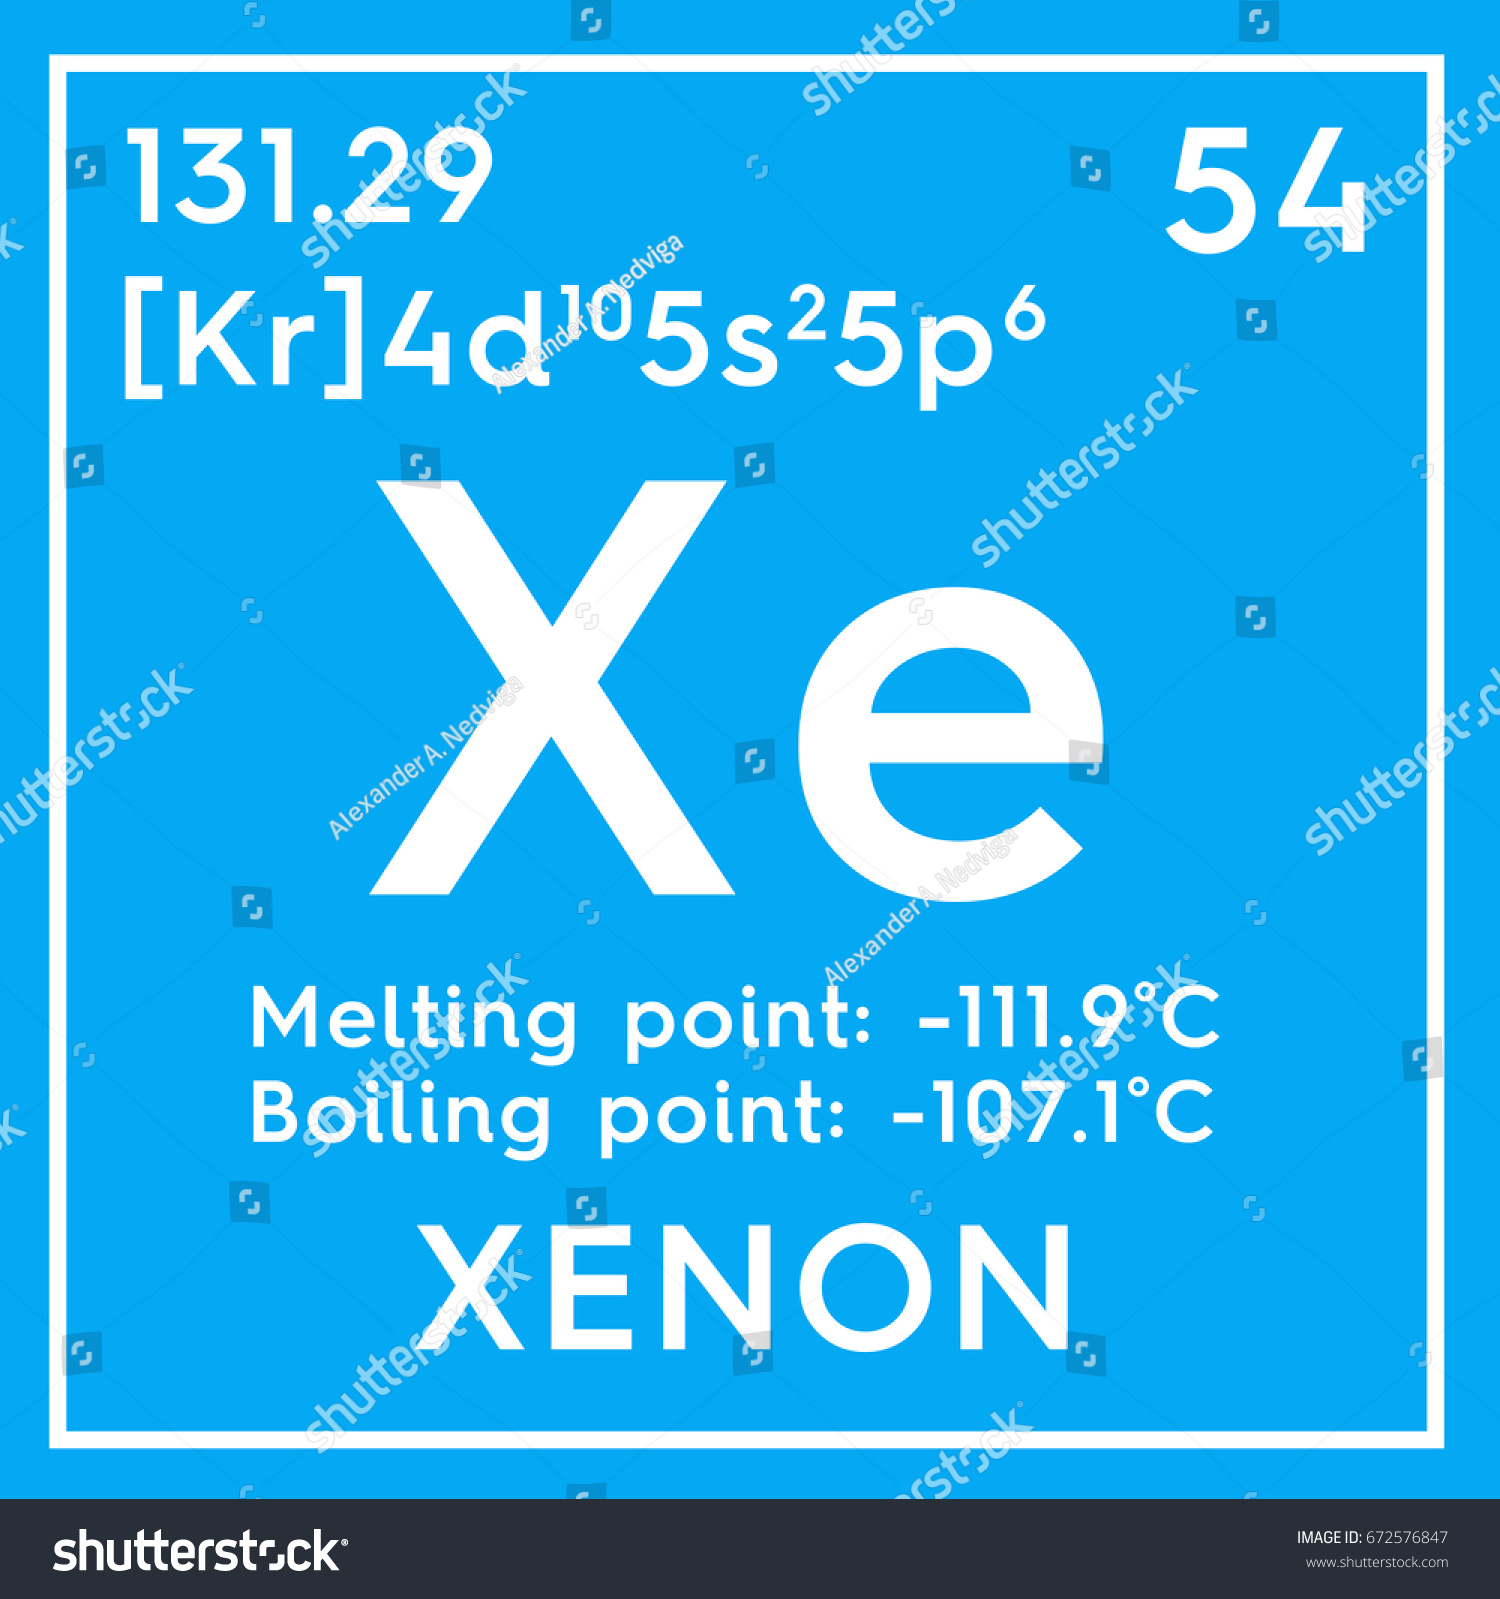 Xenon noble gases chemical element mendeleevs stock illustration noble gases chemical element of mendeleevs periodic table xenon in square cube gamestrikefo Choice Image